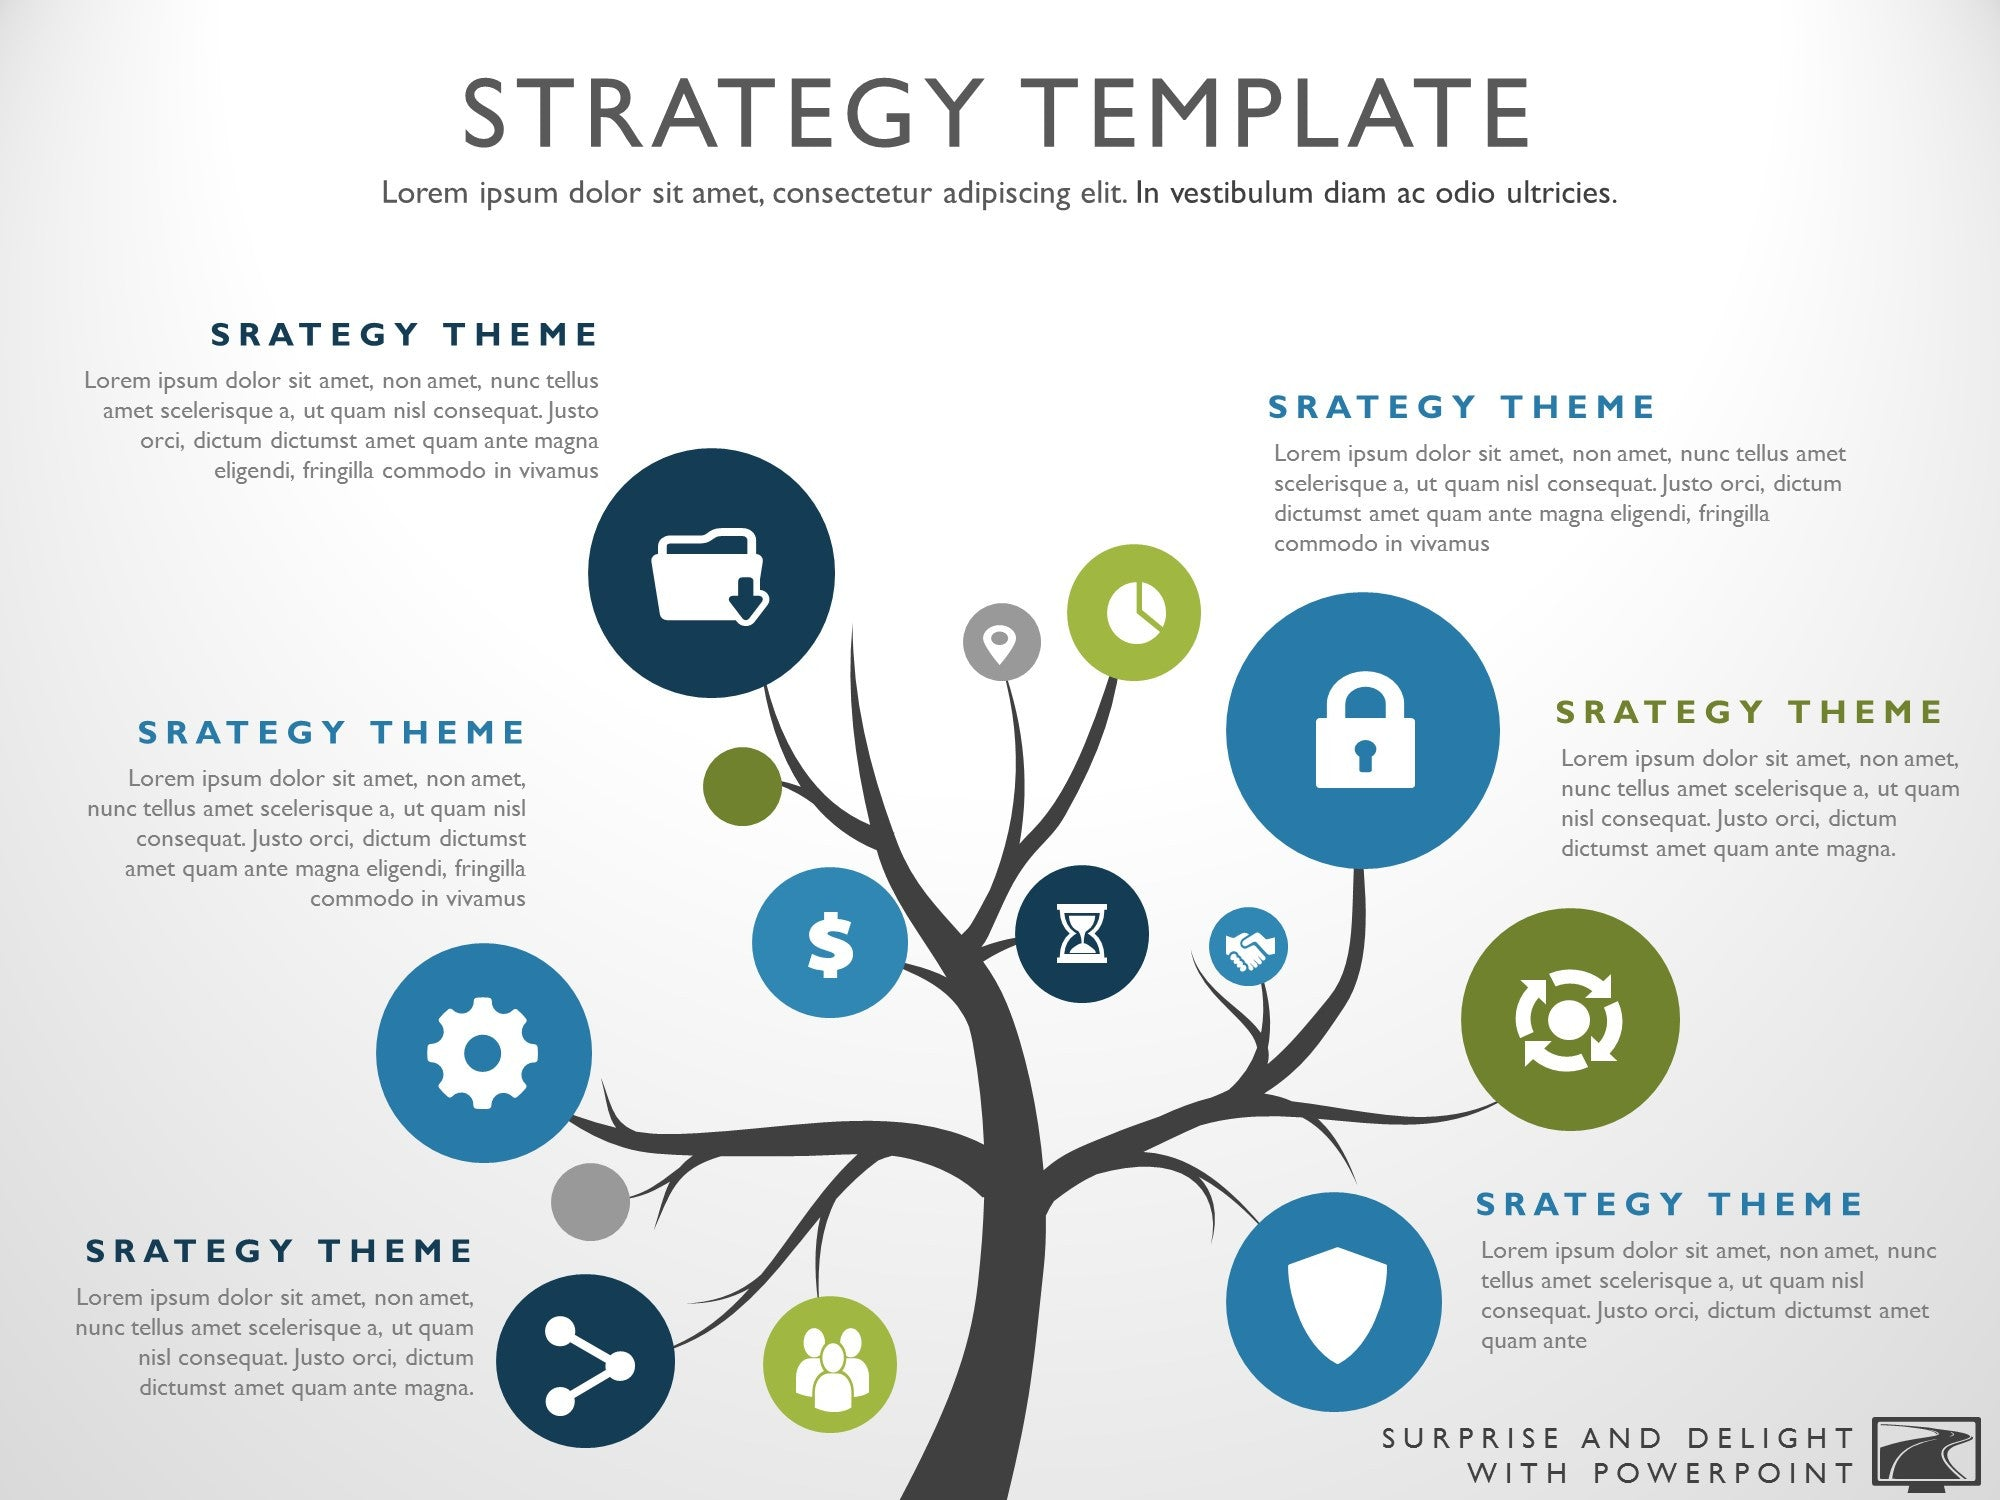 strategy templates powerpoint template roadmap marketing sustainable diagram strategic portfolio management myproductroadmap presentation planning selection tips impressive tools leadership sold